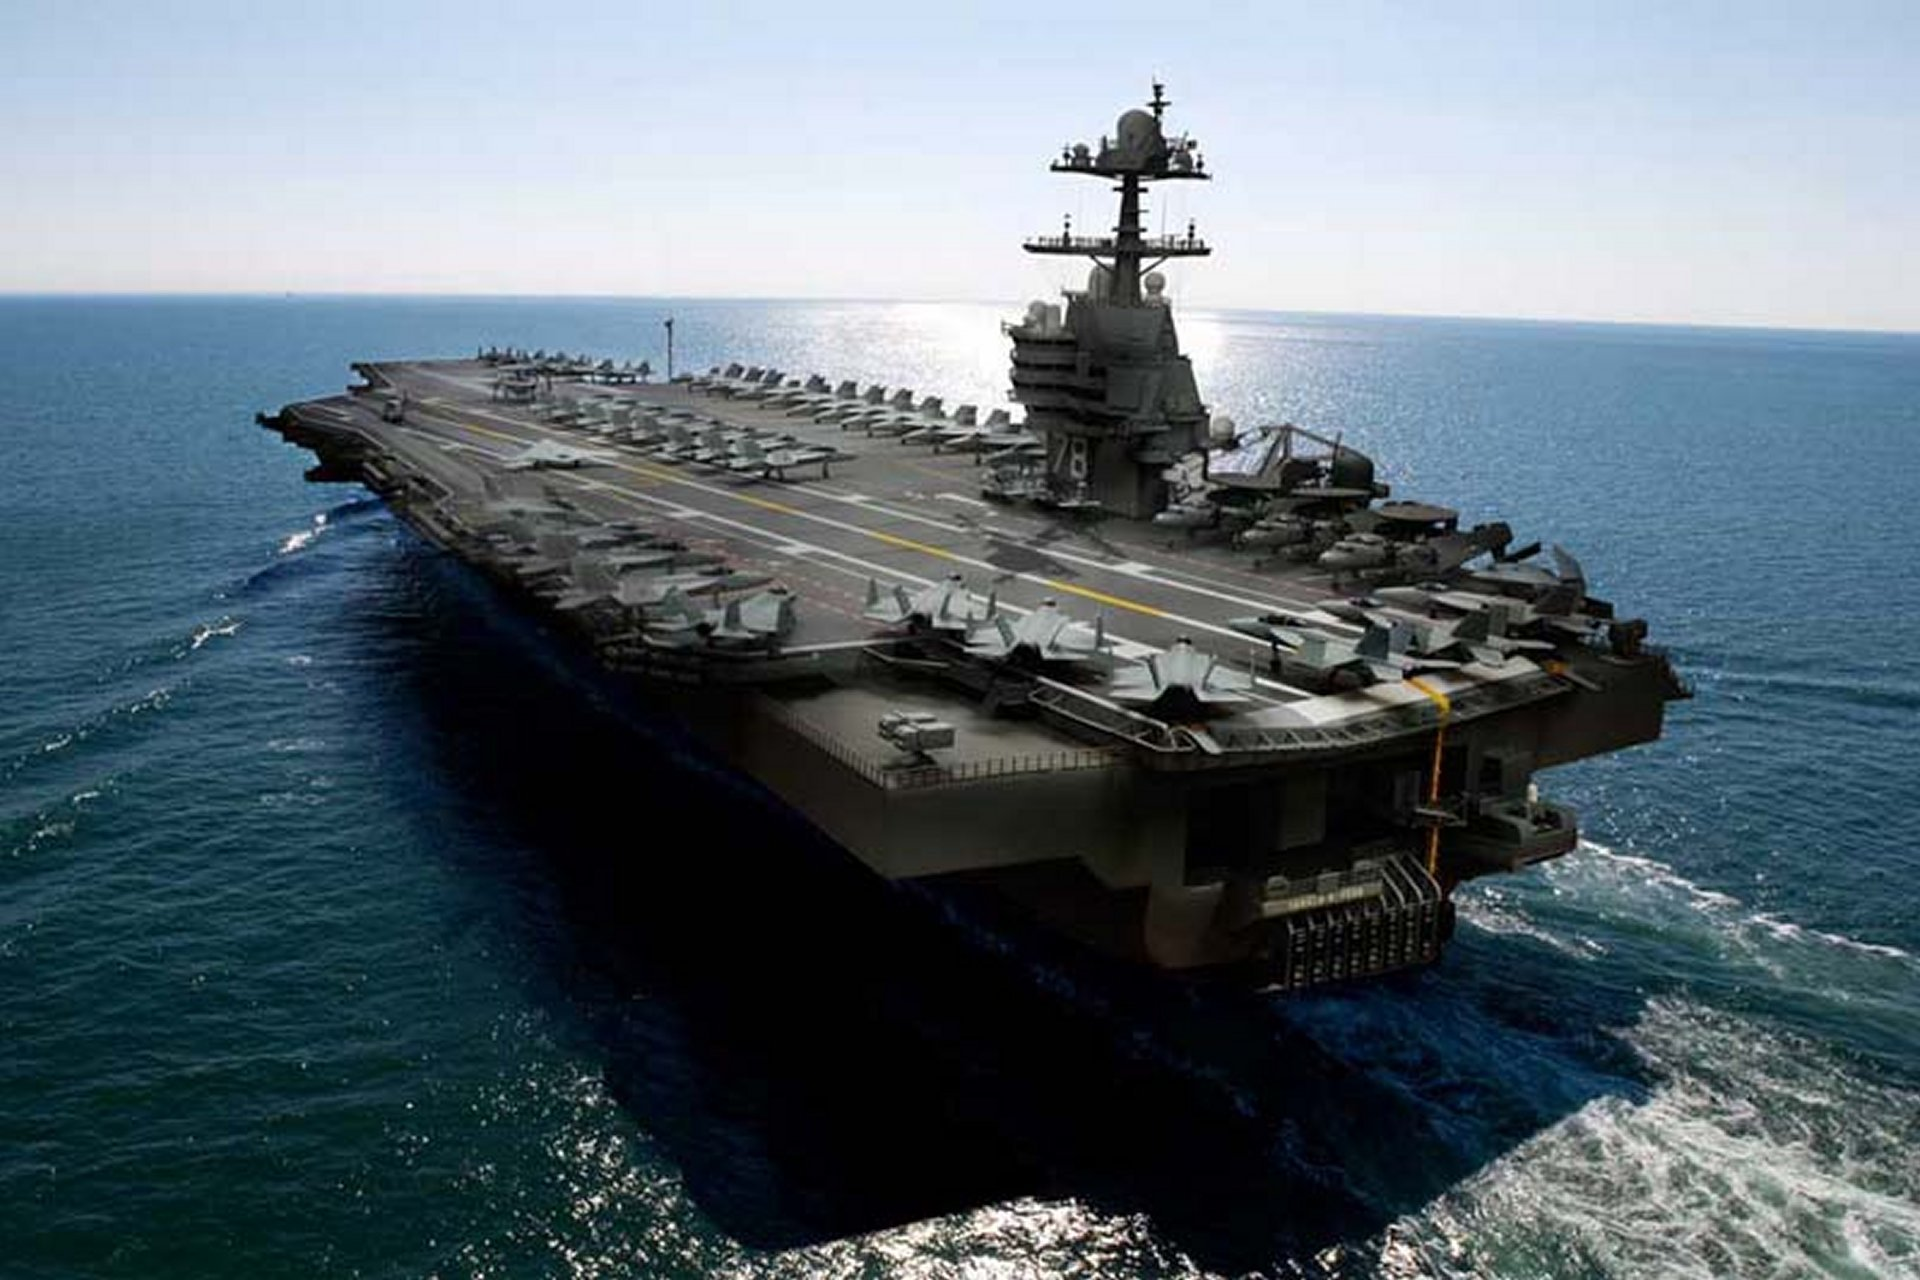 most advanced helicopter in the world with Dissecting The Uss Gerald R Ford Cvn 78 Aircraft Carrier on World S Largest Plane Lands At World S Biggest Airport In Dubai 2016 05 19 1 together with F 35 Fighter Jet furthermore The Forest further Watch together with Lhd.